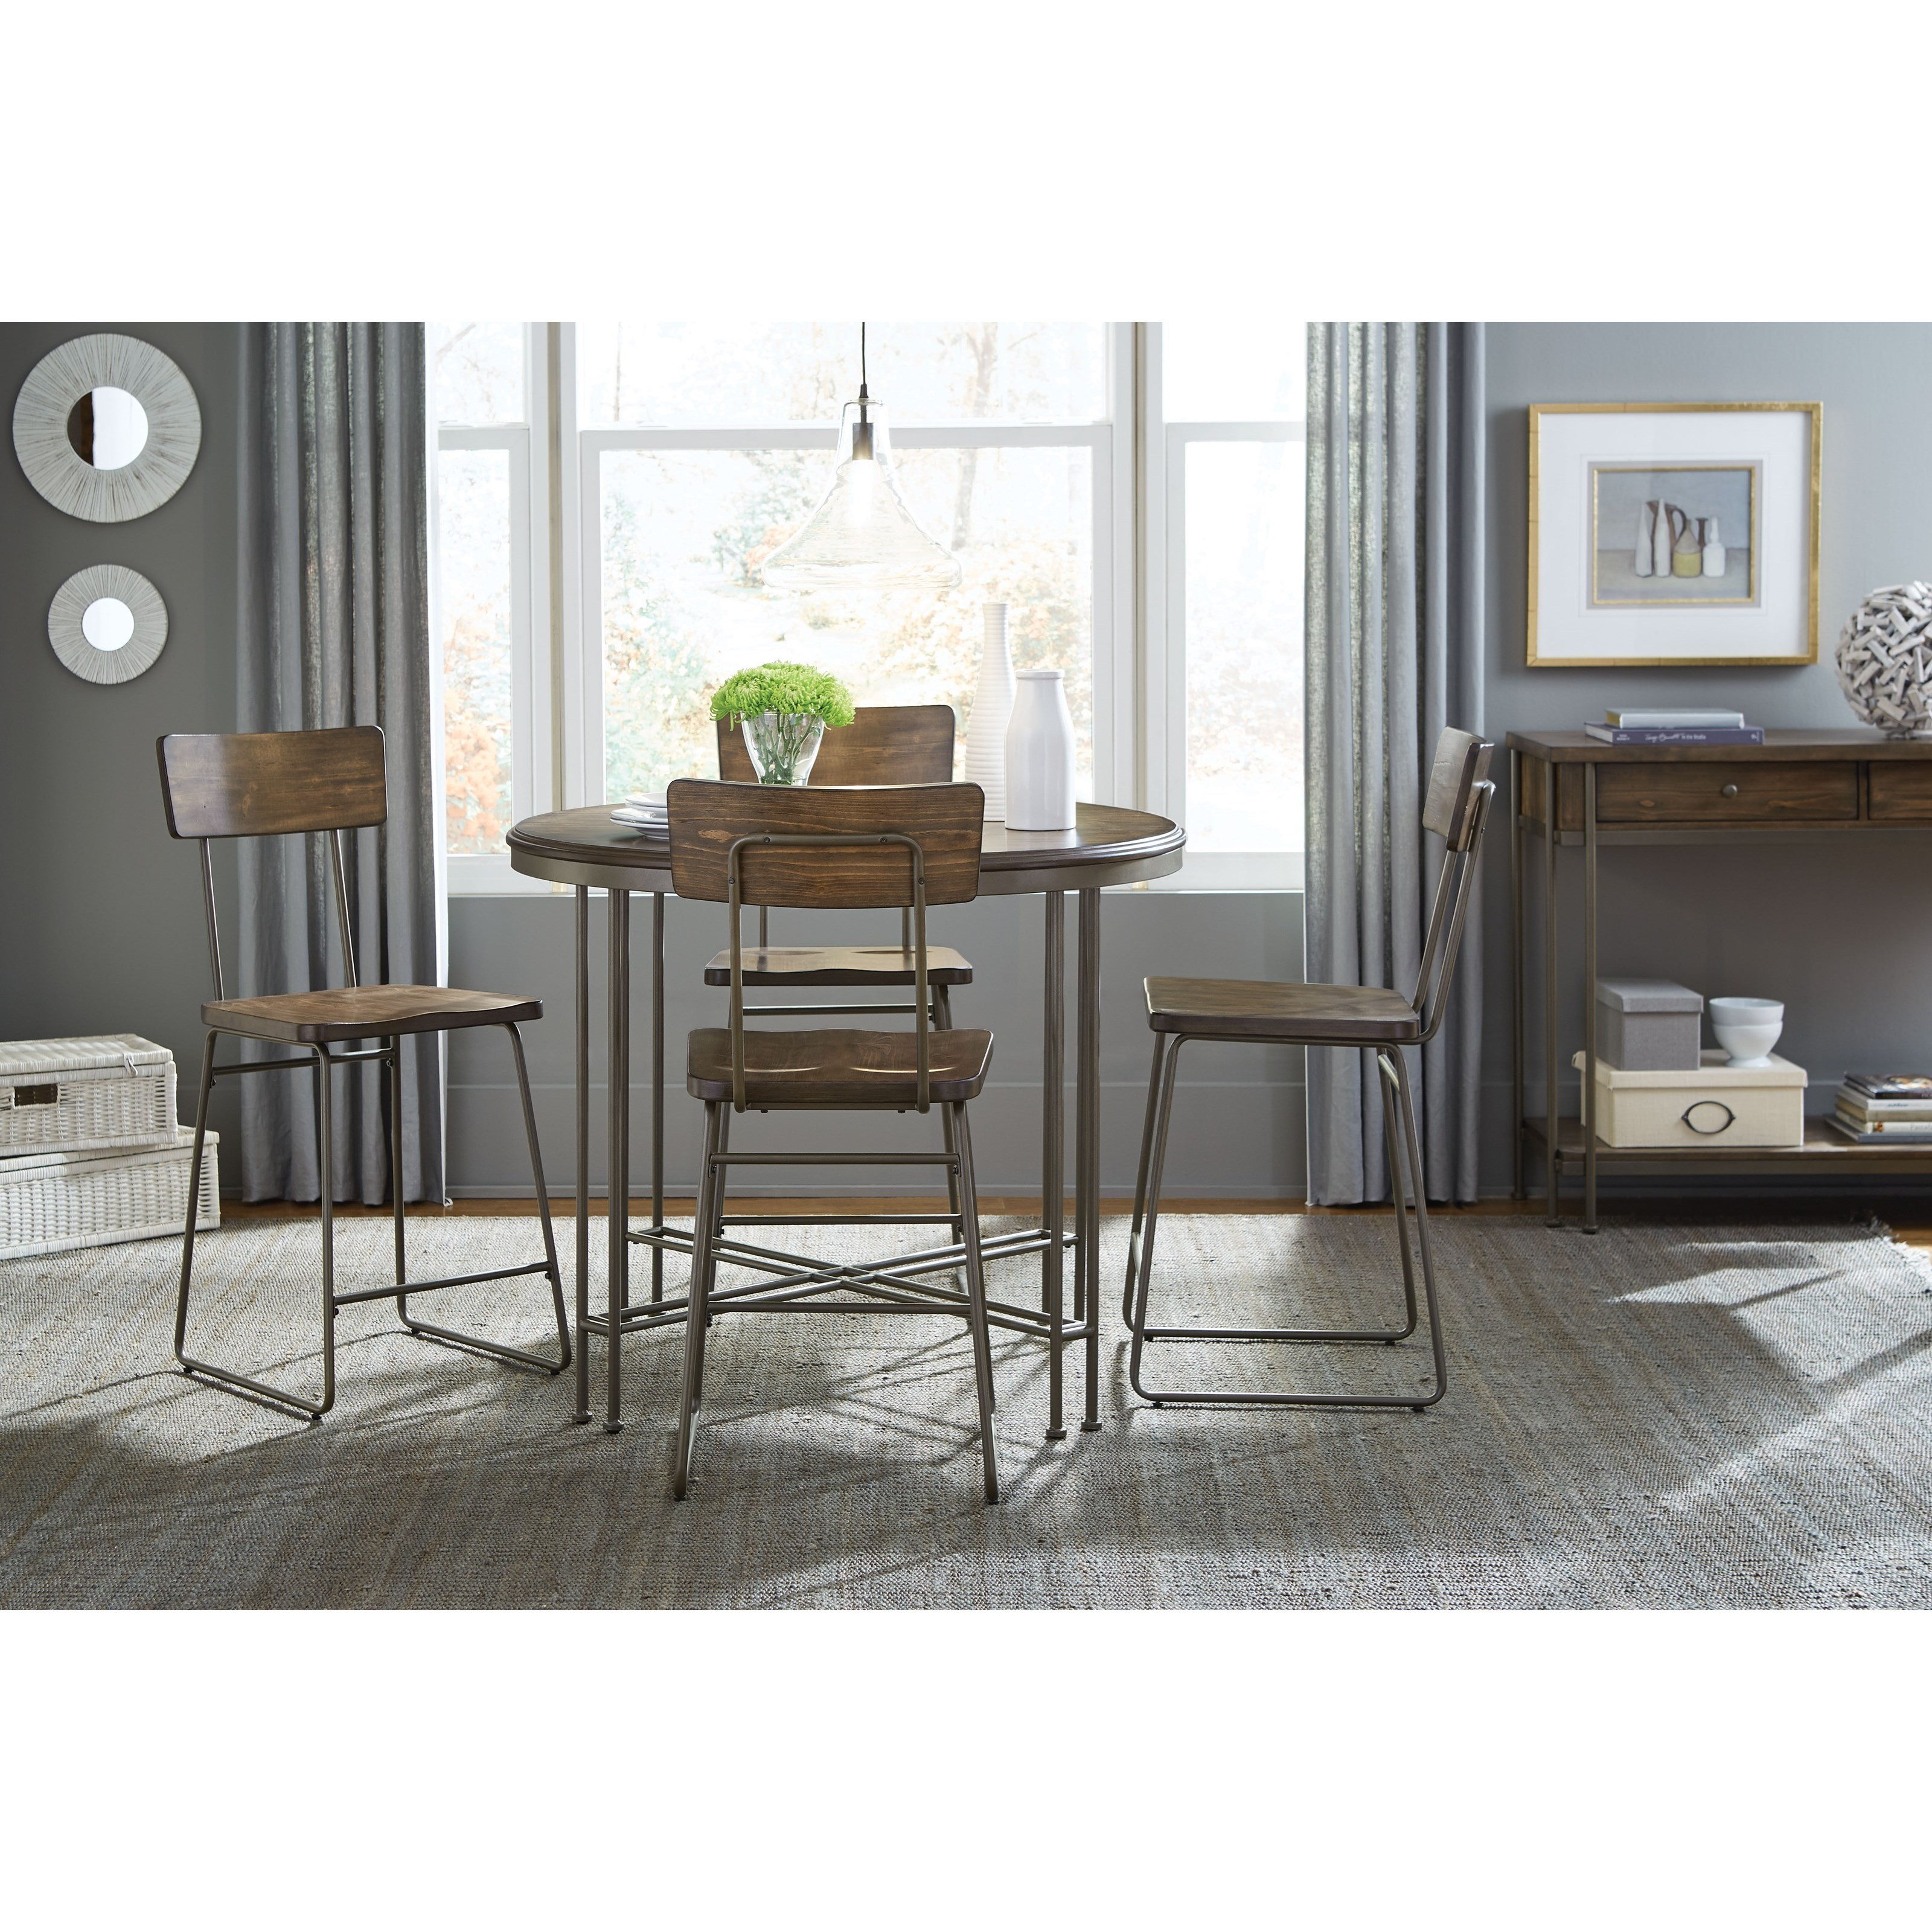 Standard Furniture Oslo Casual Dining Room Group - Item Number: 11600 Casual Dining Room Group 1